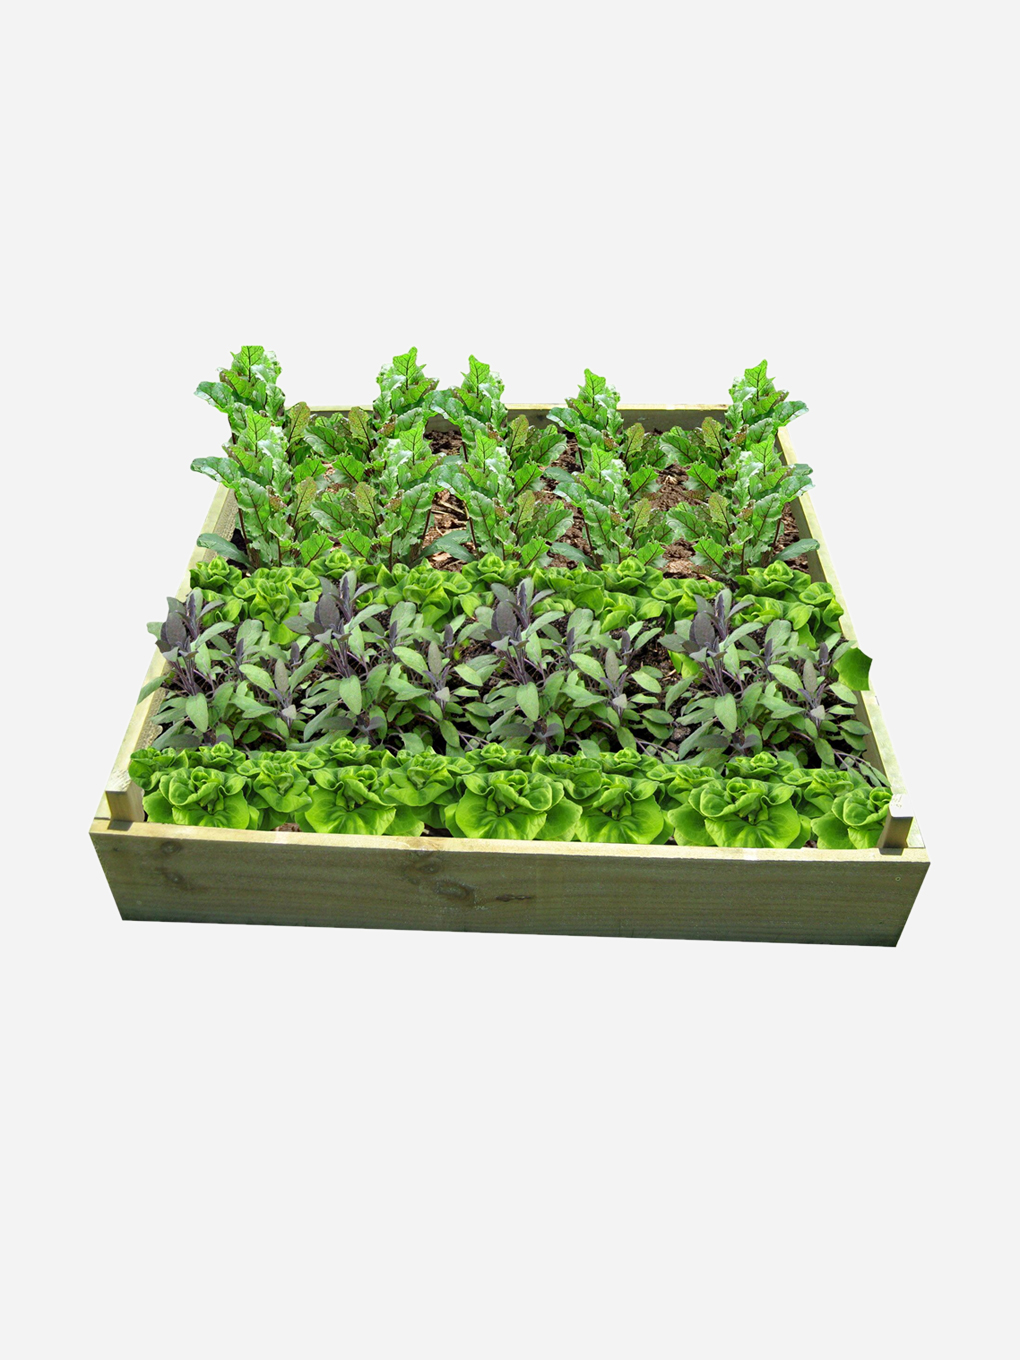 Get Growing Okiwi Raised Garden Bed 1200x1200 Raised Gardens And Planter Boxes Buy Online At Gubba